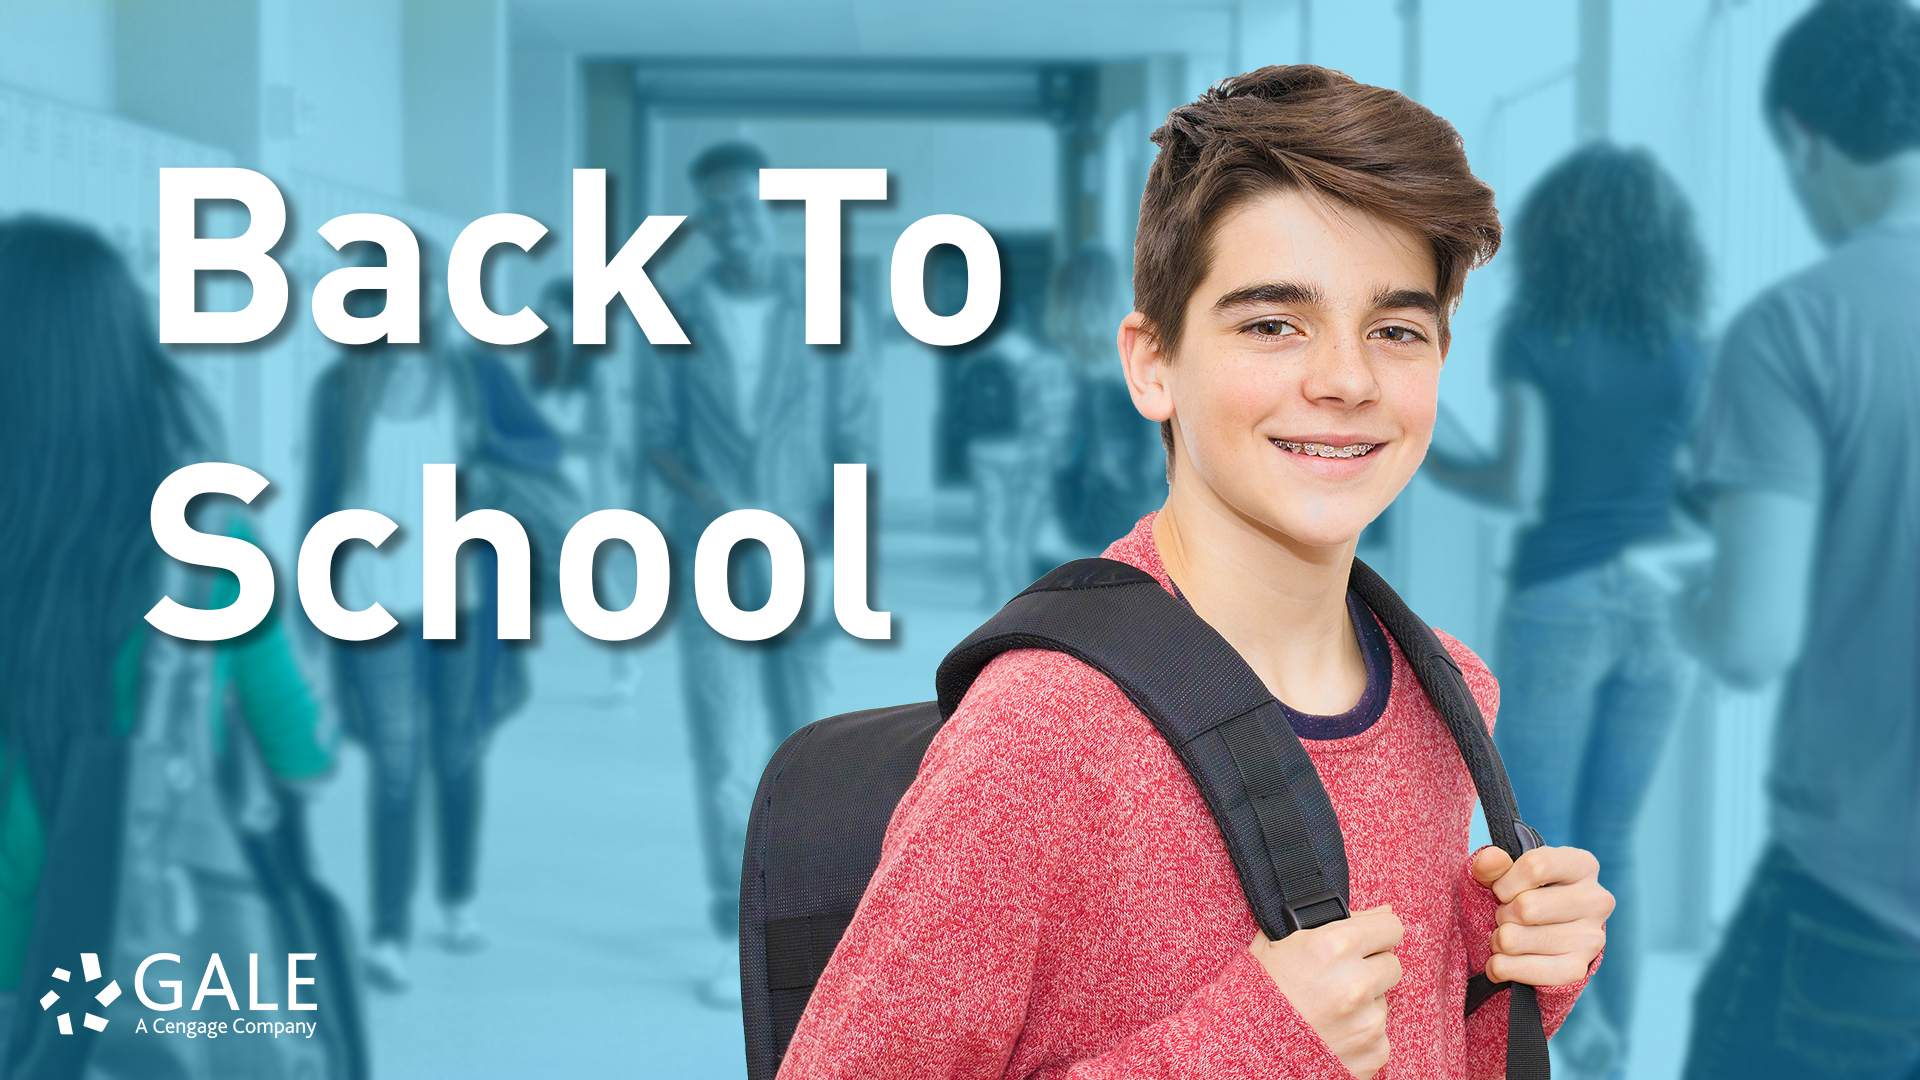 Back To School with INSPIRE Thumbnail